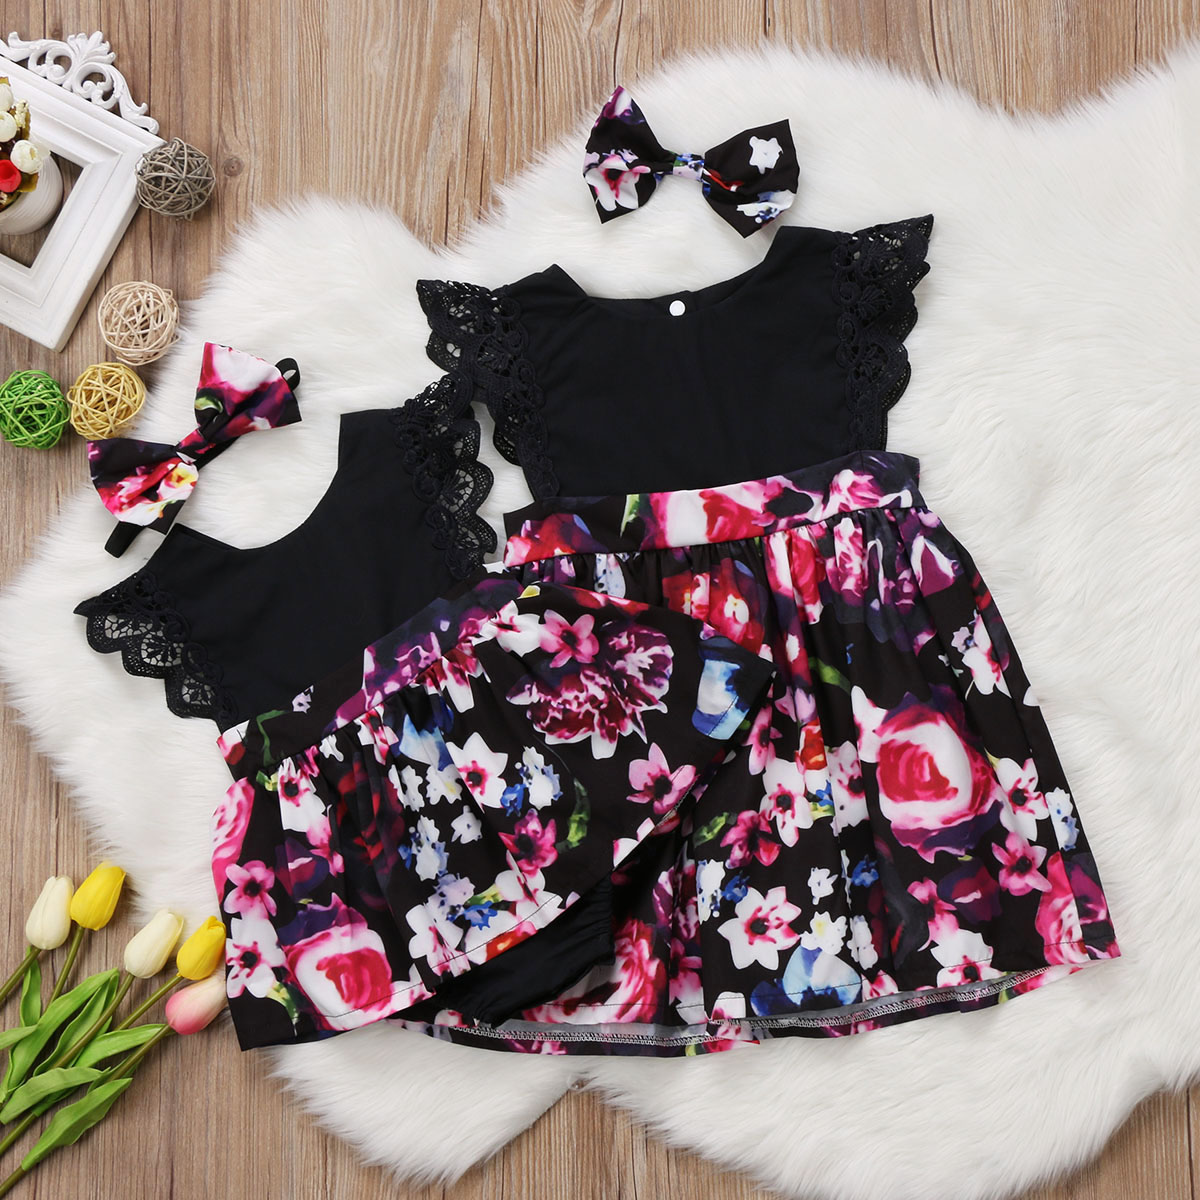 2pcs Newborn Kids Baby Girl Floral Romper Dress Little Sister Big Sister Match Outfit